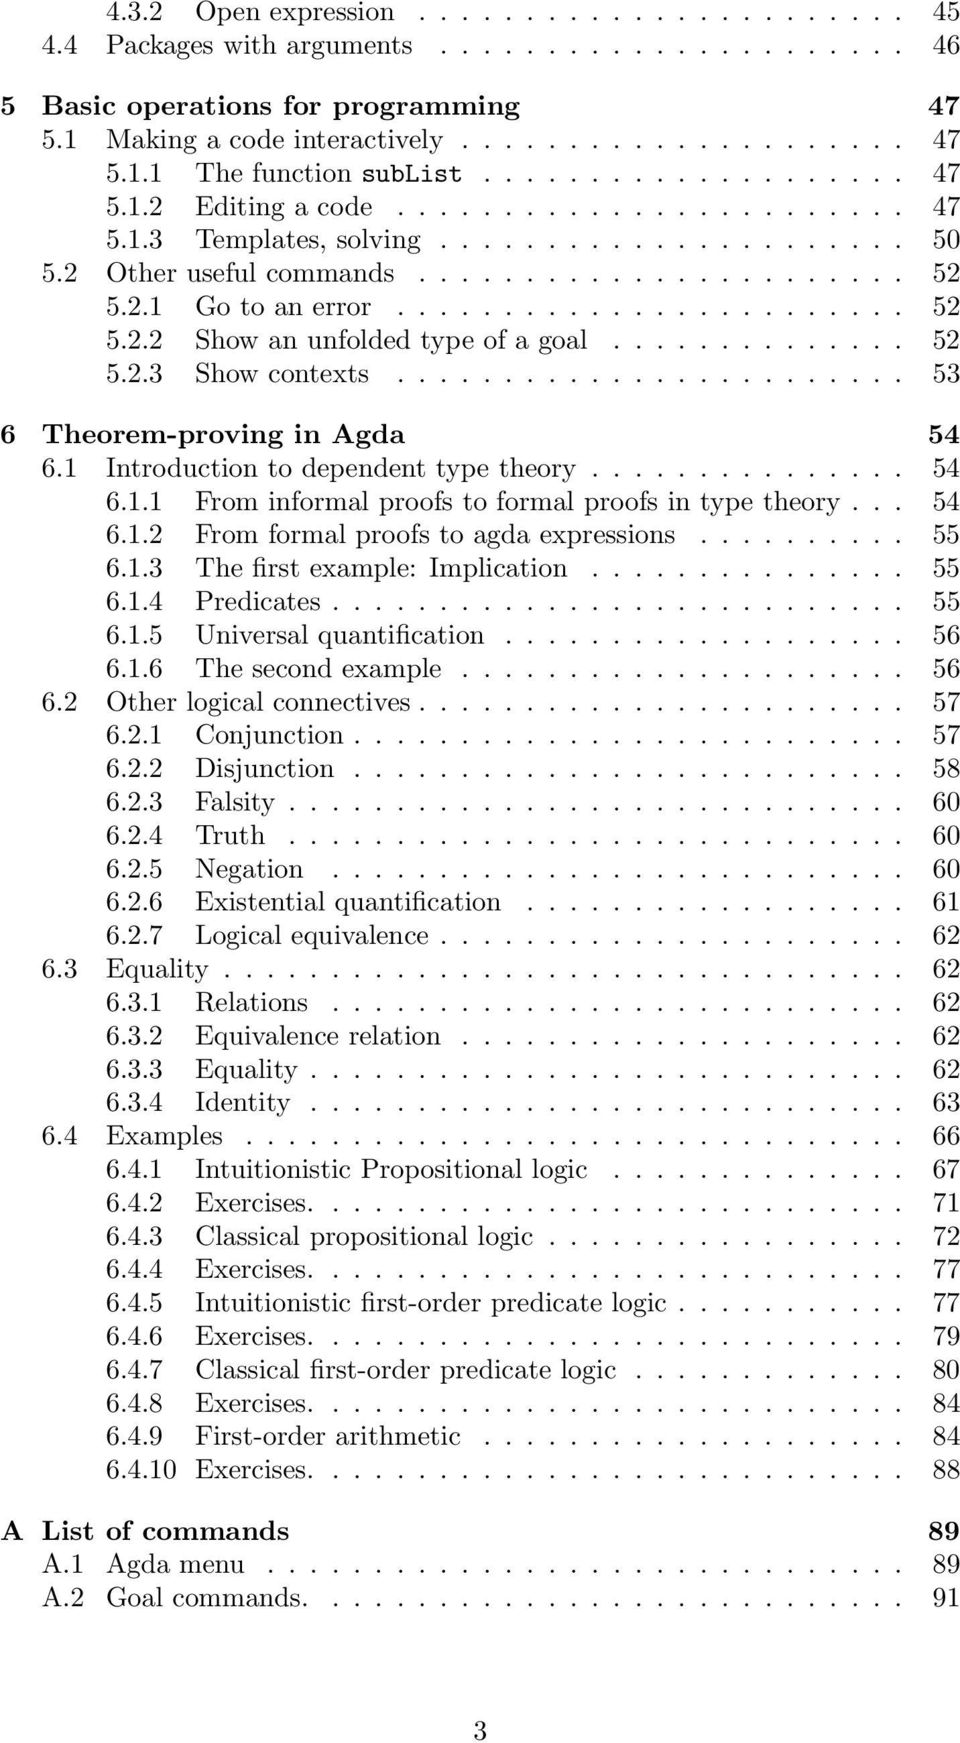 ............. 52 5.2.3 Show contexts........................ 53 6 Theorem-proving in Agda 54 6.1 Introduction to dependent type theory............... 54 6.1.1 From informal proofs to formal proofs in type theory.